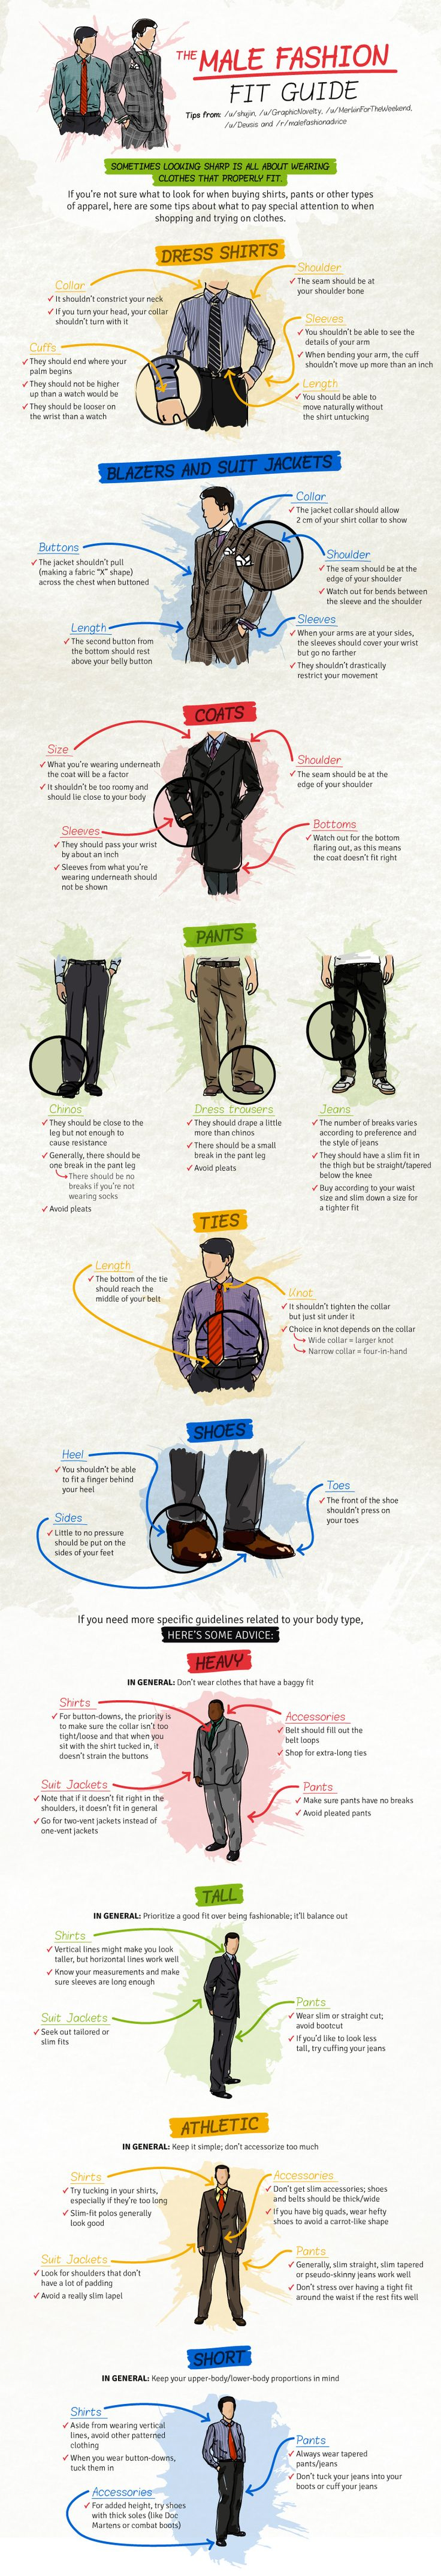 mywebroom blog buzzfeed male fashion perfect fit style infographic